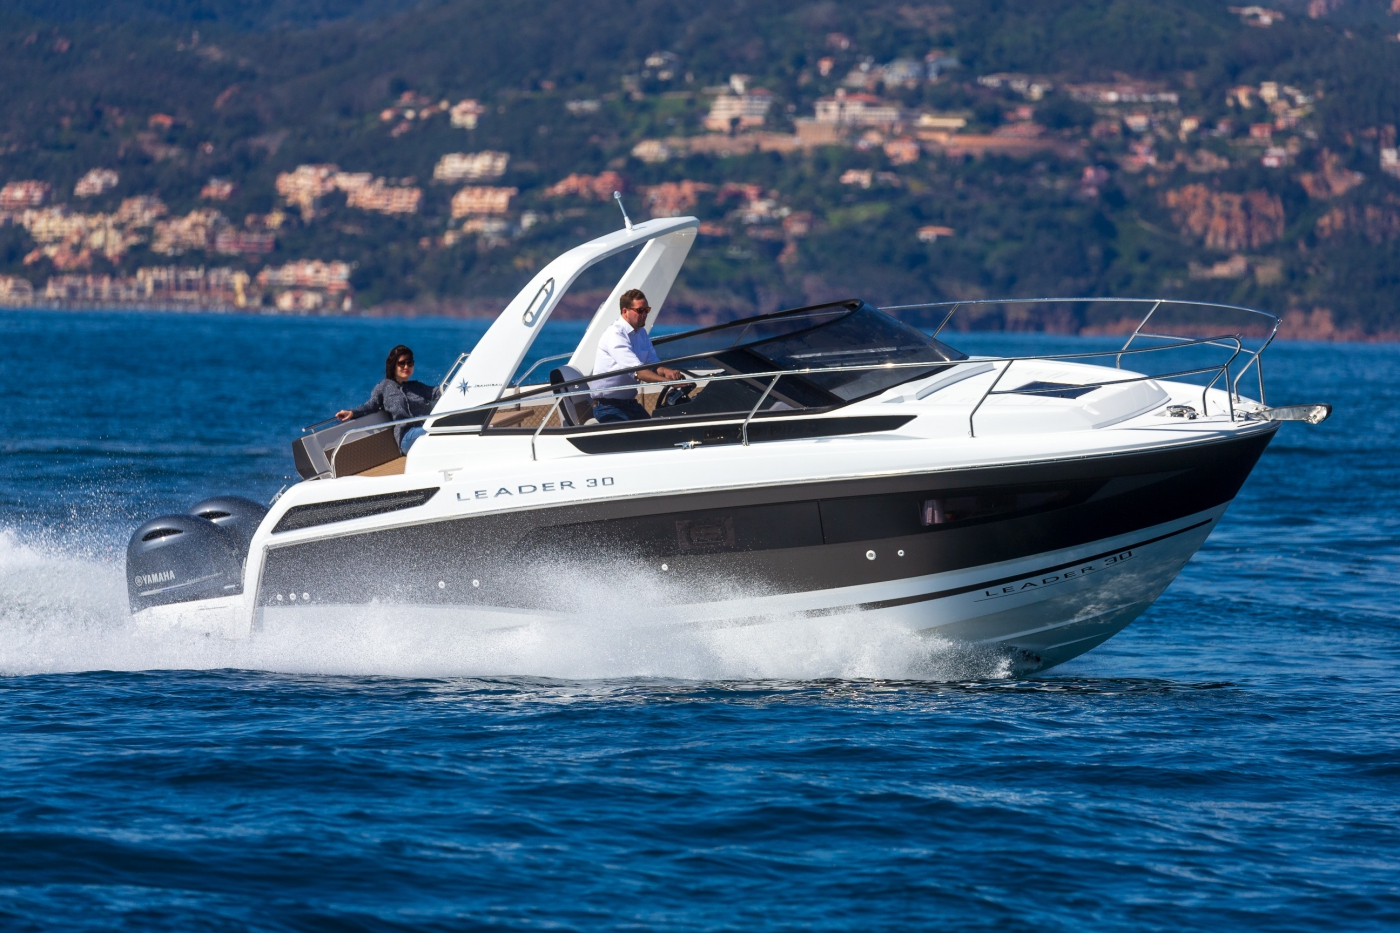 Jeanneau Leader 30 OB Outboard Motor Boats - Sea Ventures - Sea